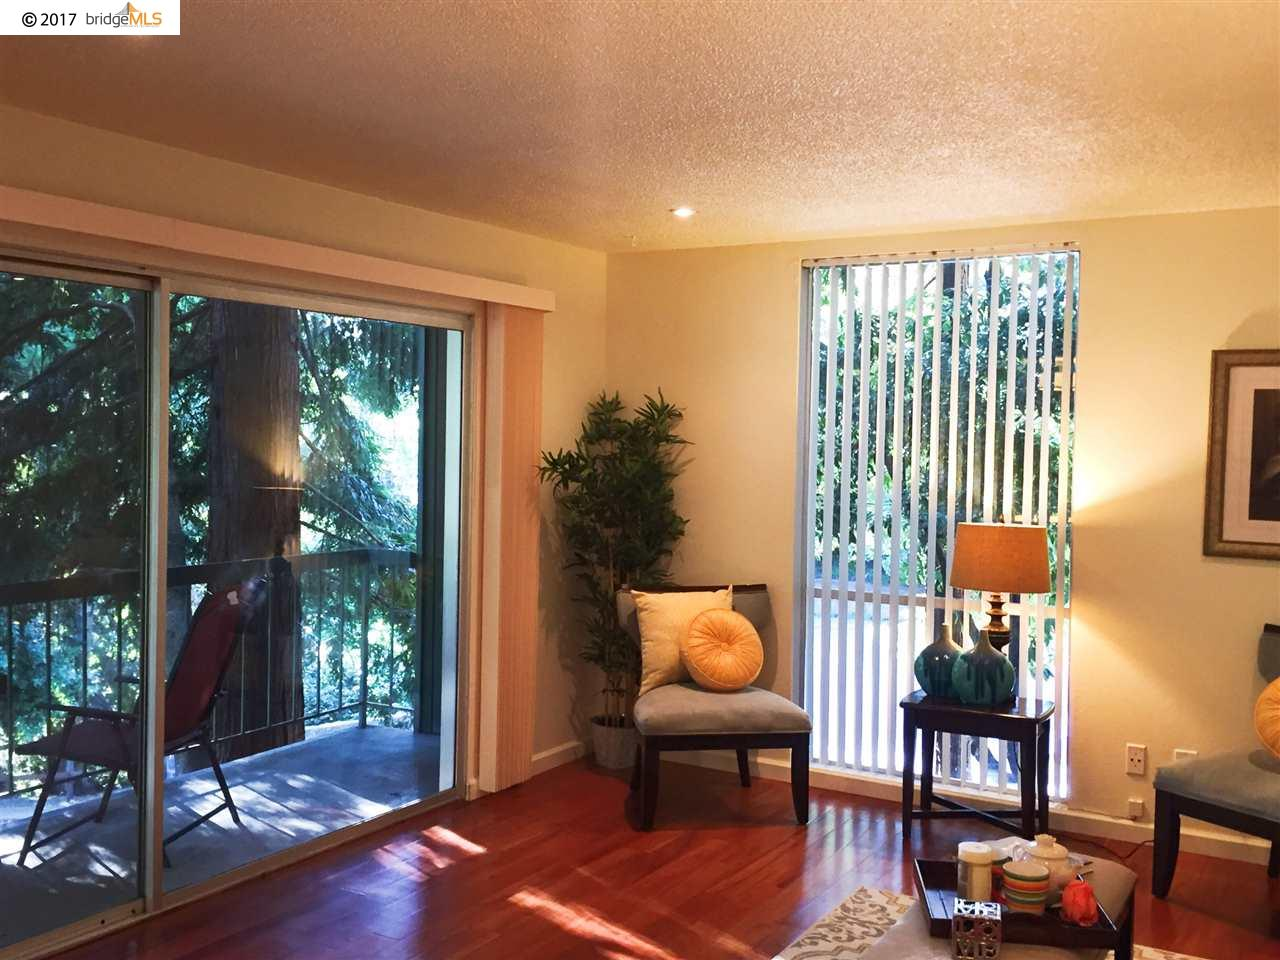 Additional photo for property listing at 2700 Le Conte Avenue  Berkeley, Californie 94709 États-Unis